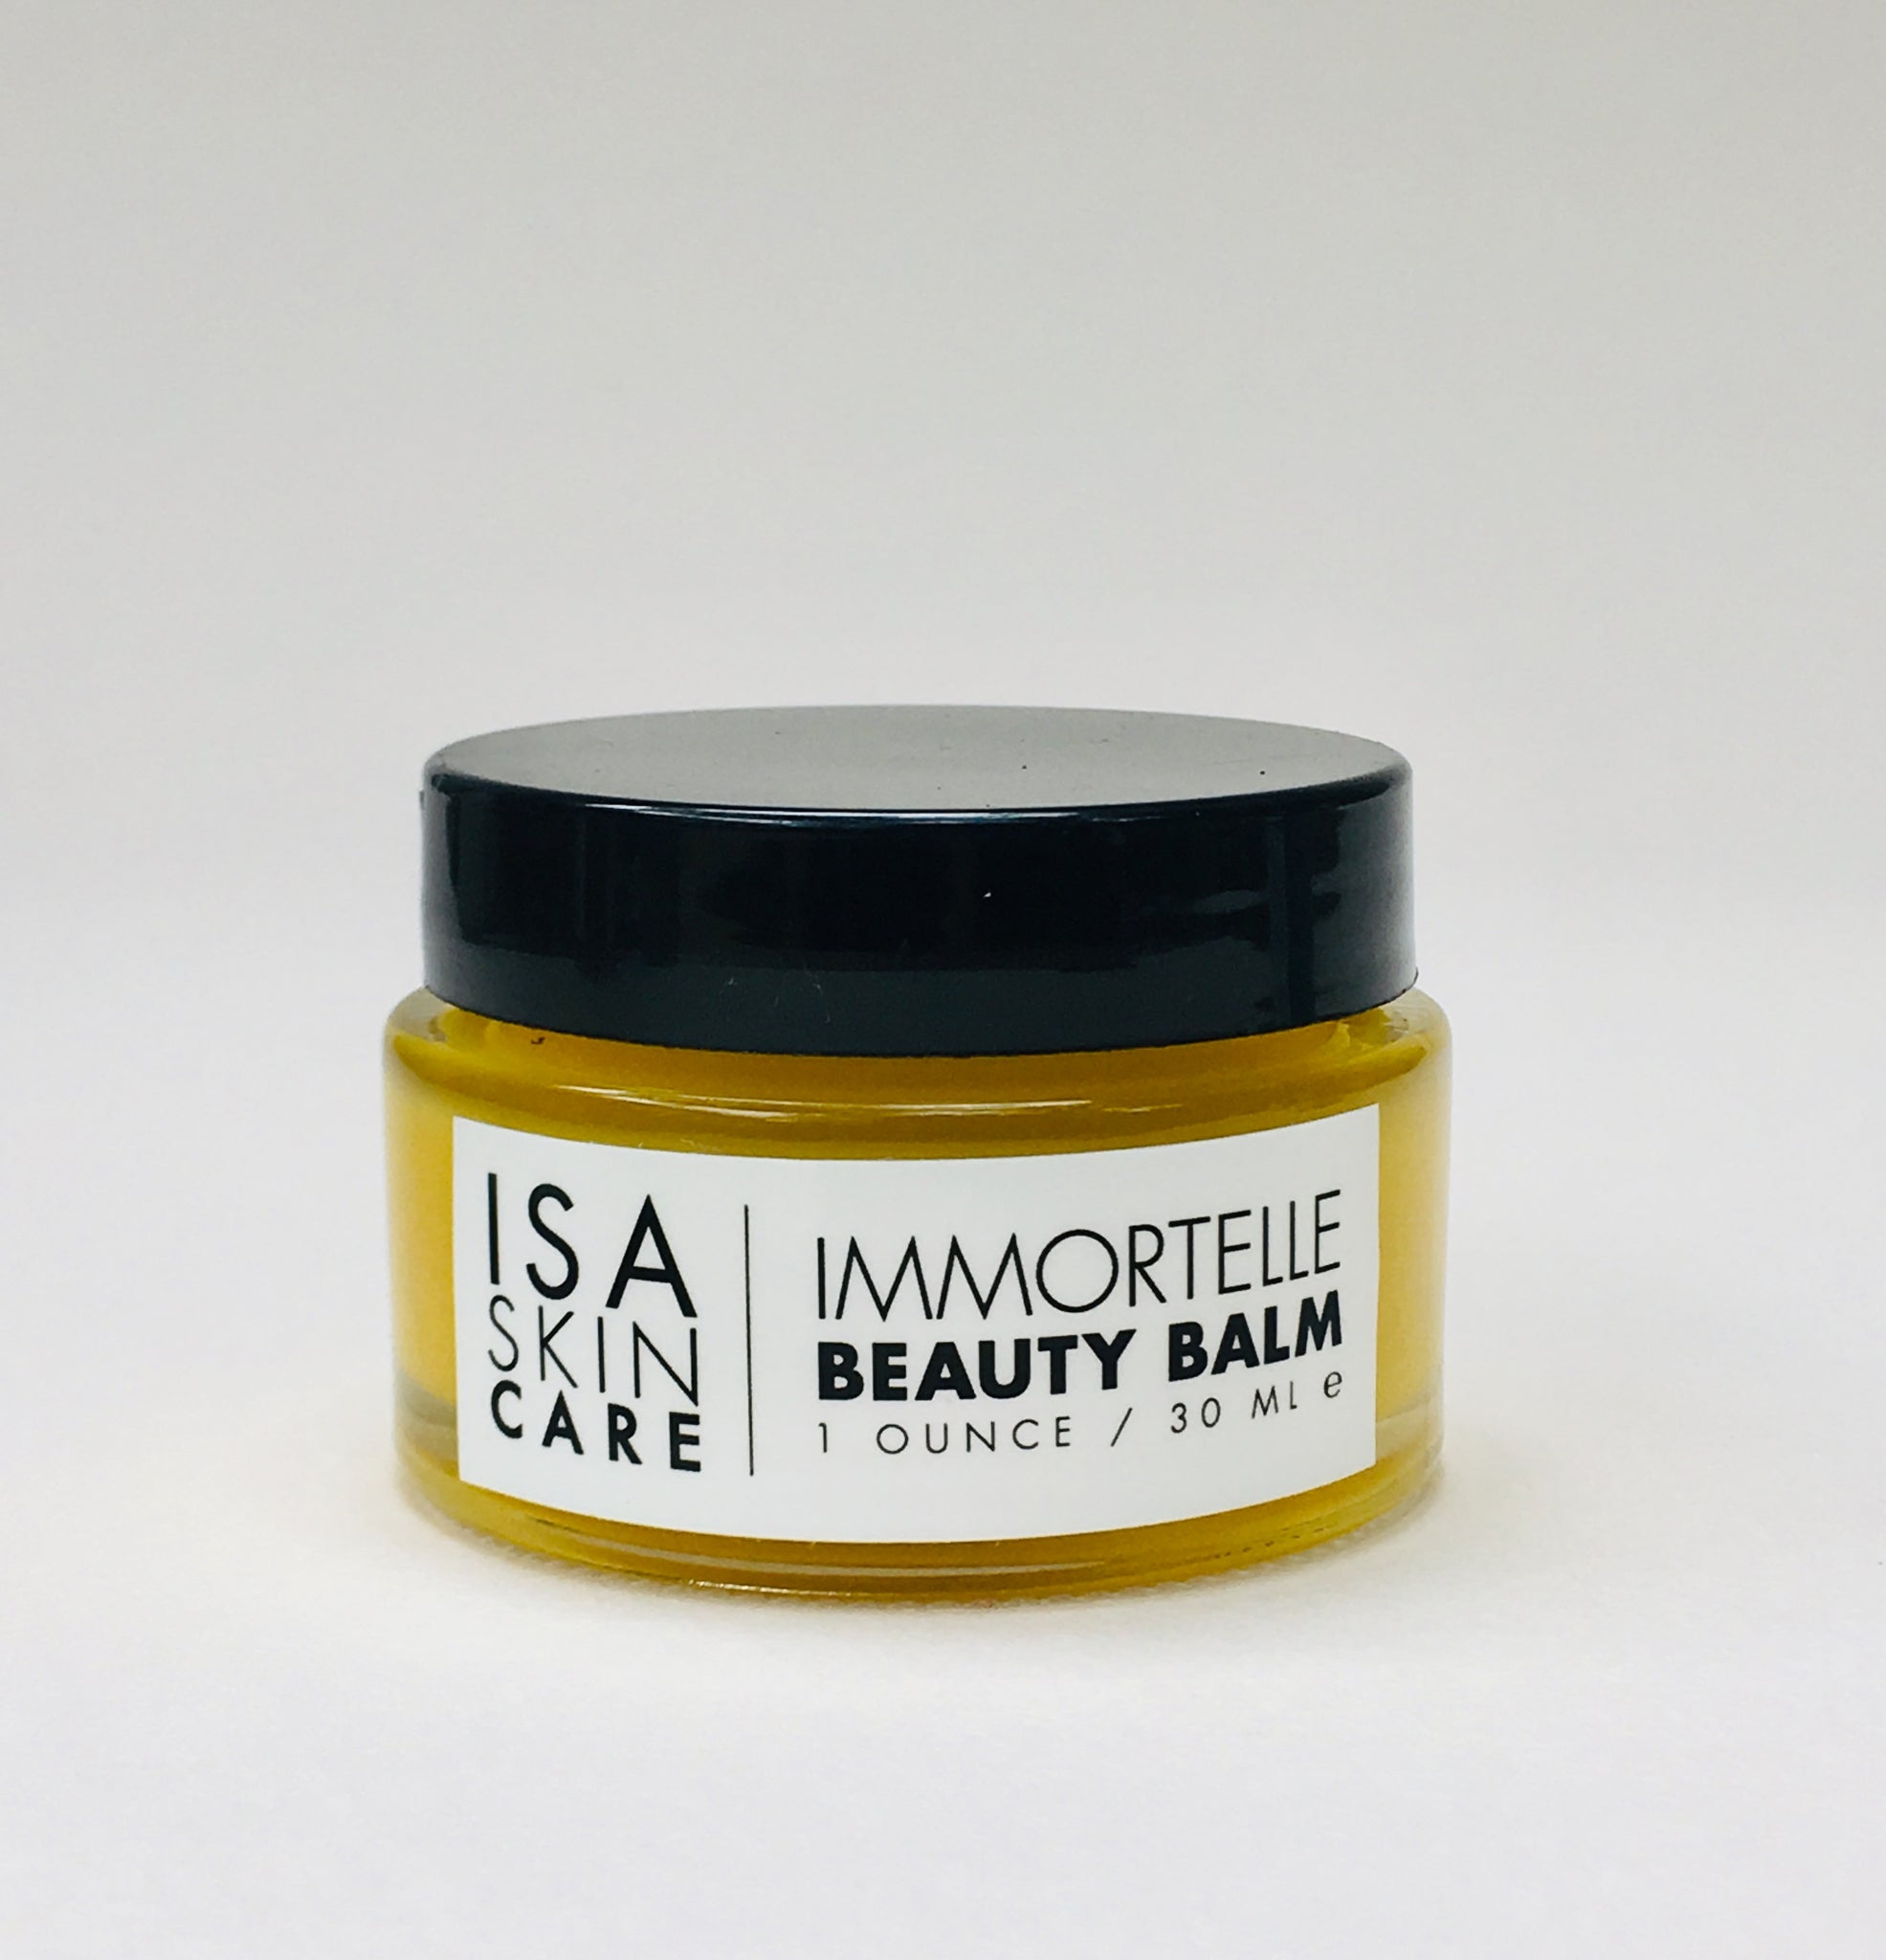 IMMORTELLE BEAUTY BALM 1.0 oz